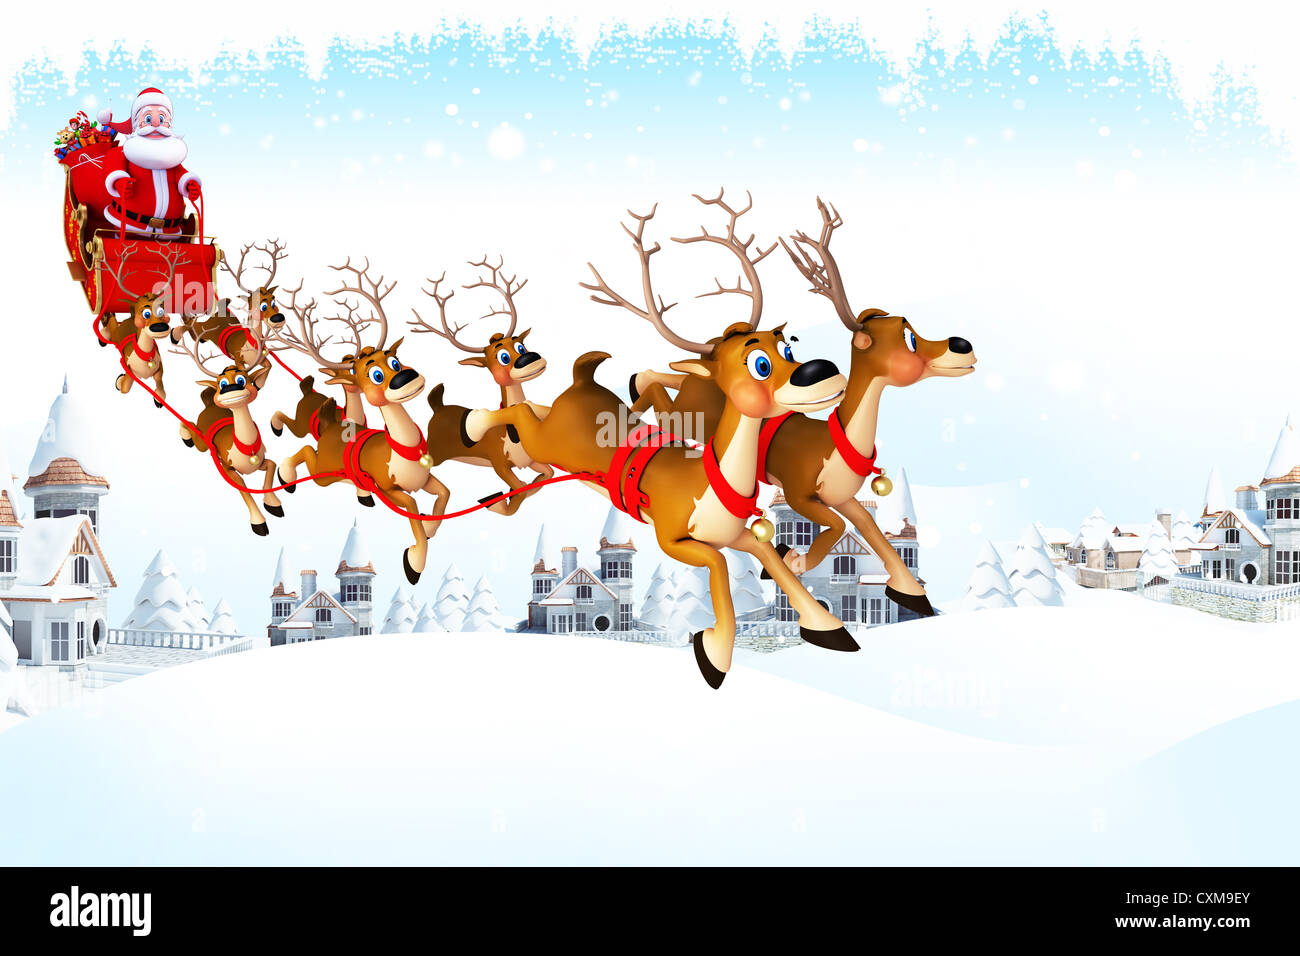 Santa Sleigh Reindeer Deer Gifts Iceland Blue Christmas Stock Photos ...